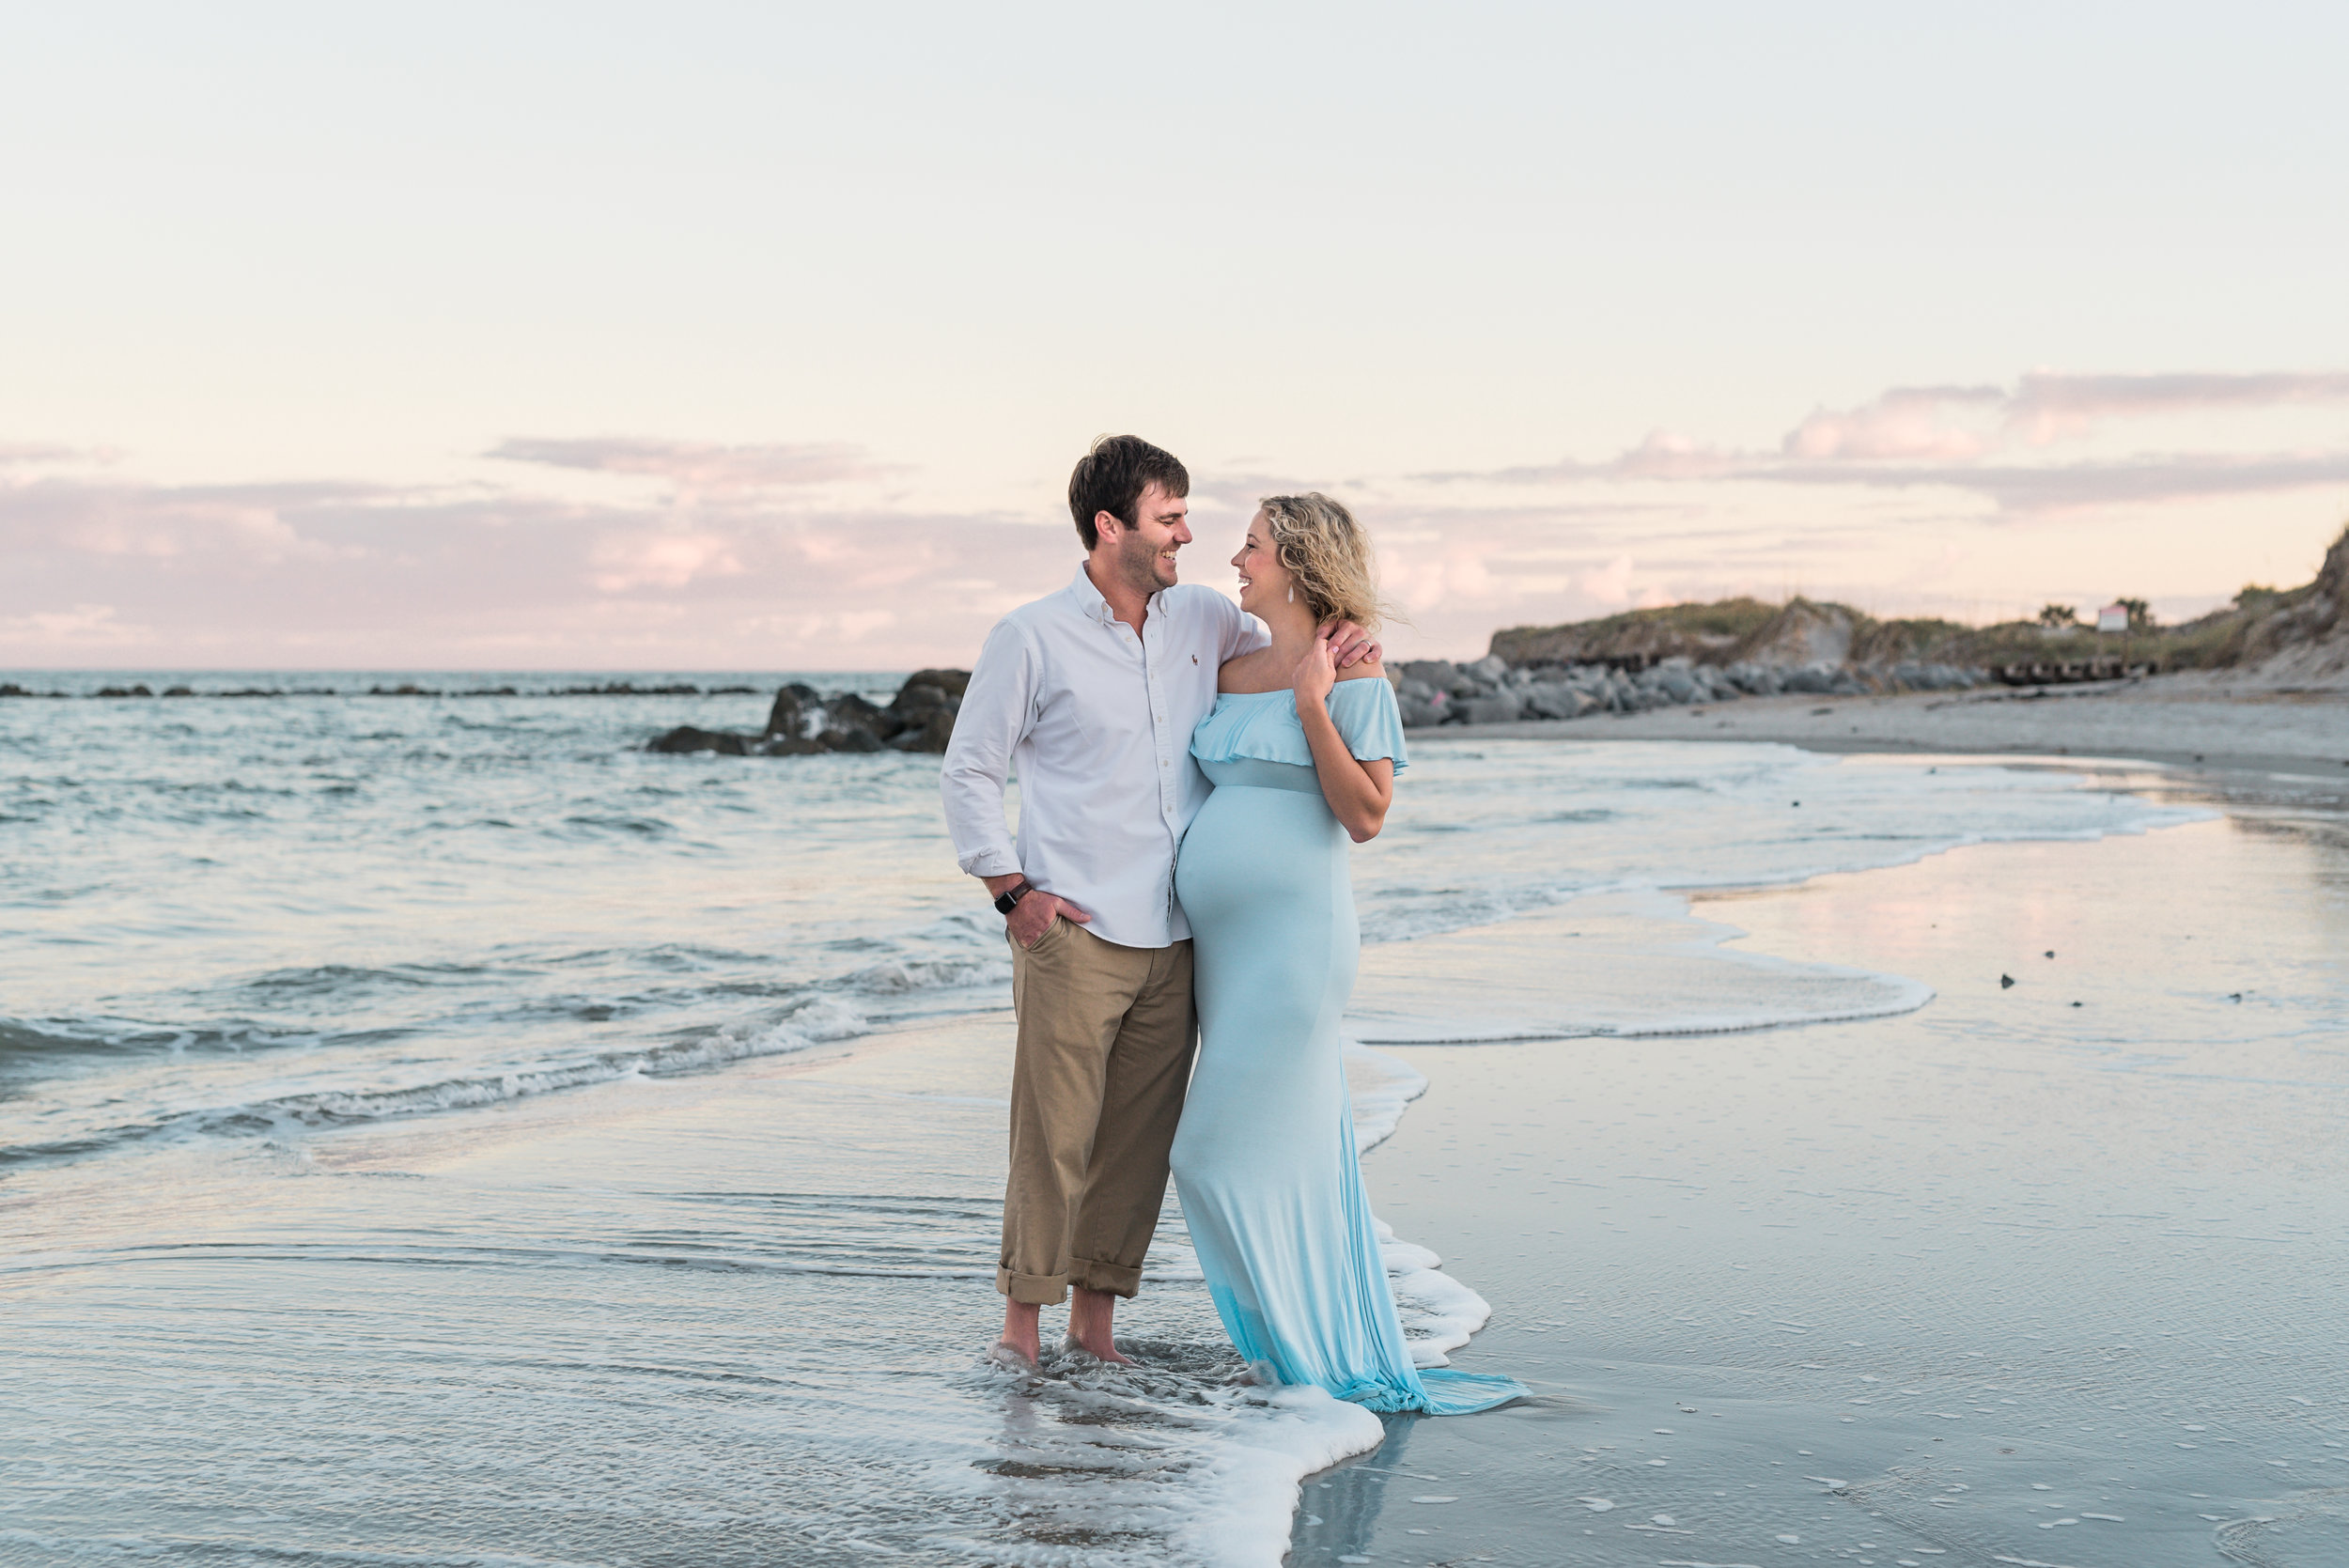 Folly-Beach-Maternity-Photographer-Following-Seas-Photography-6166 copy.jpg